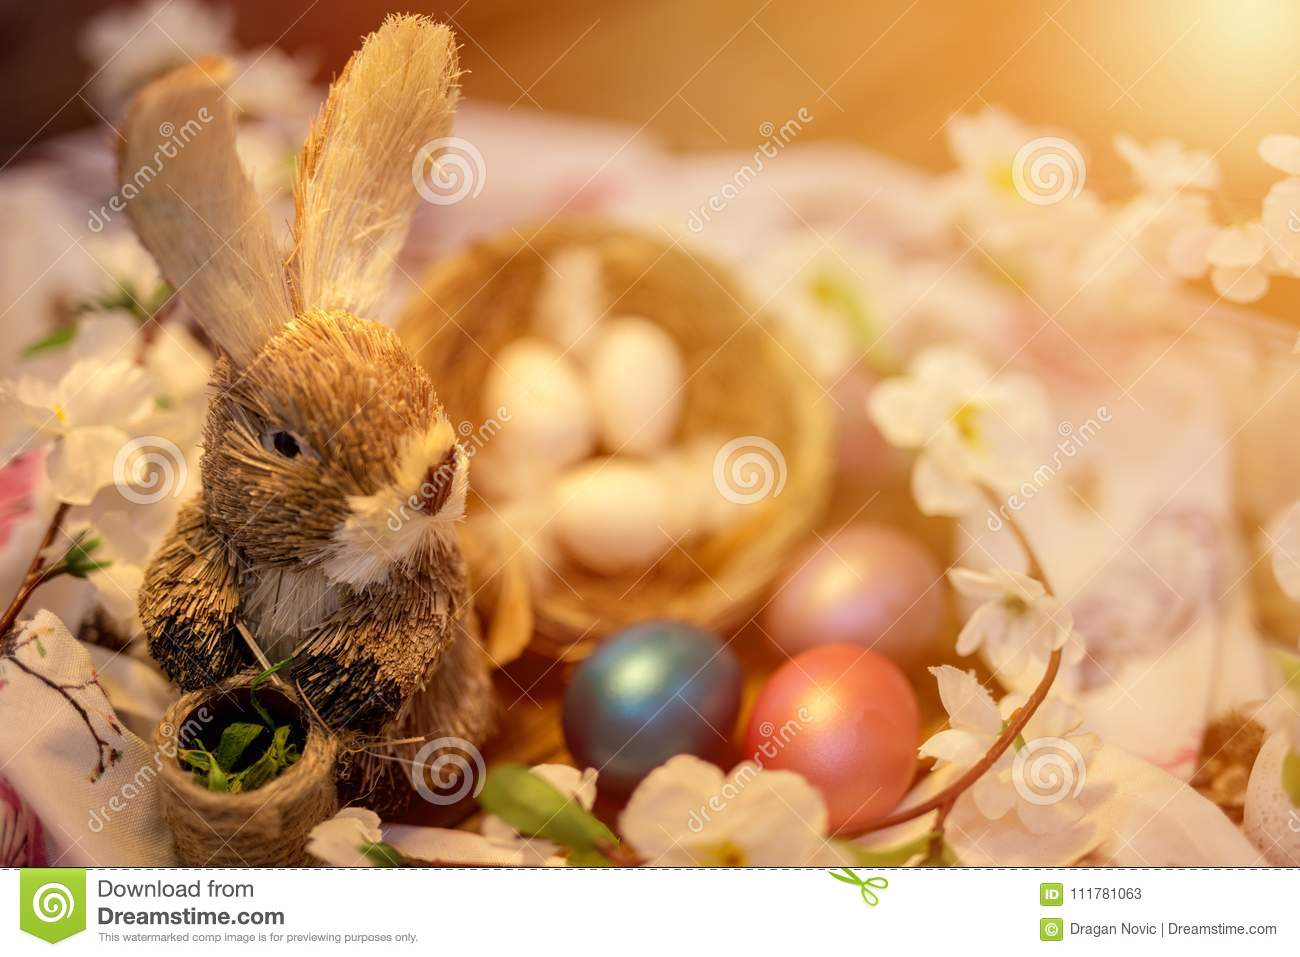 Easter bunny sitting next to a nest filled with colorful easter